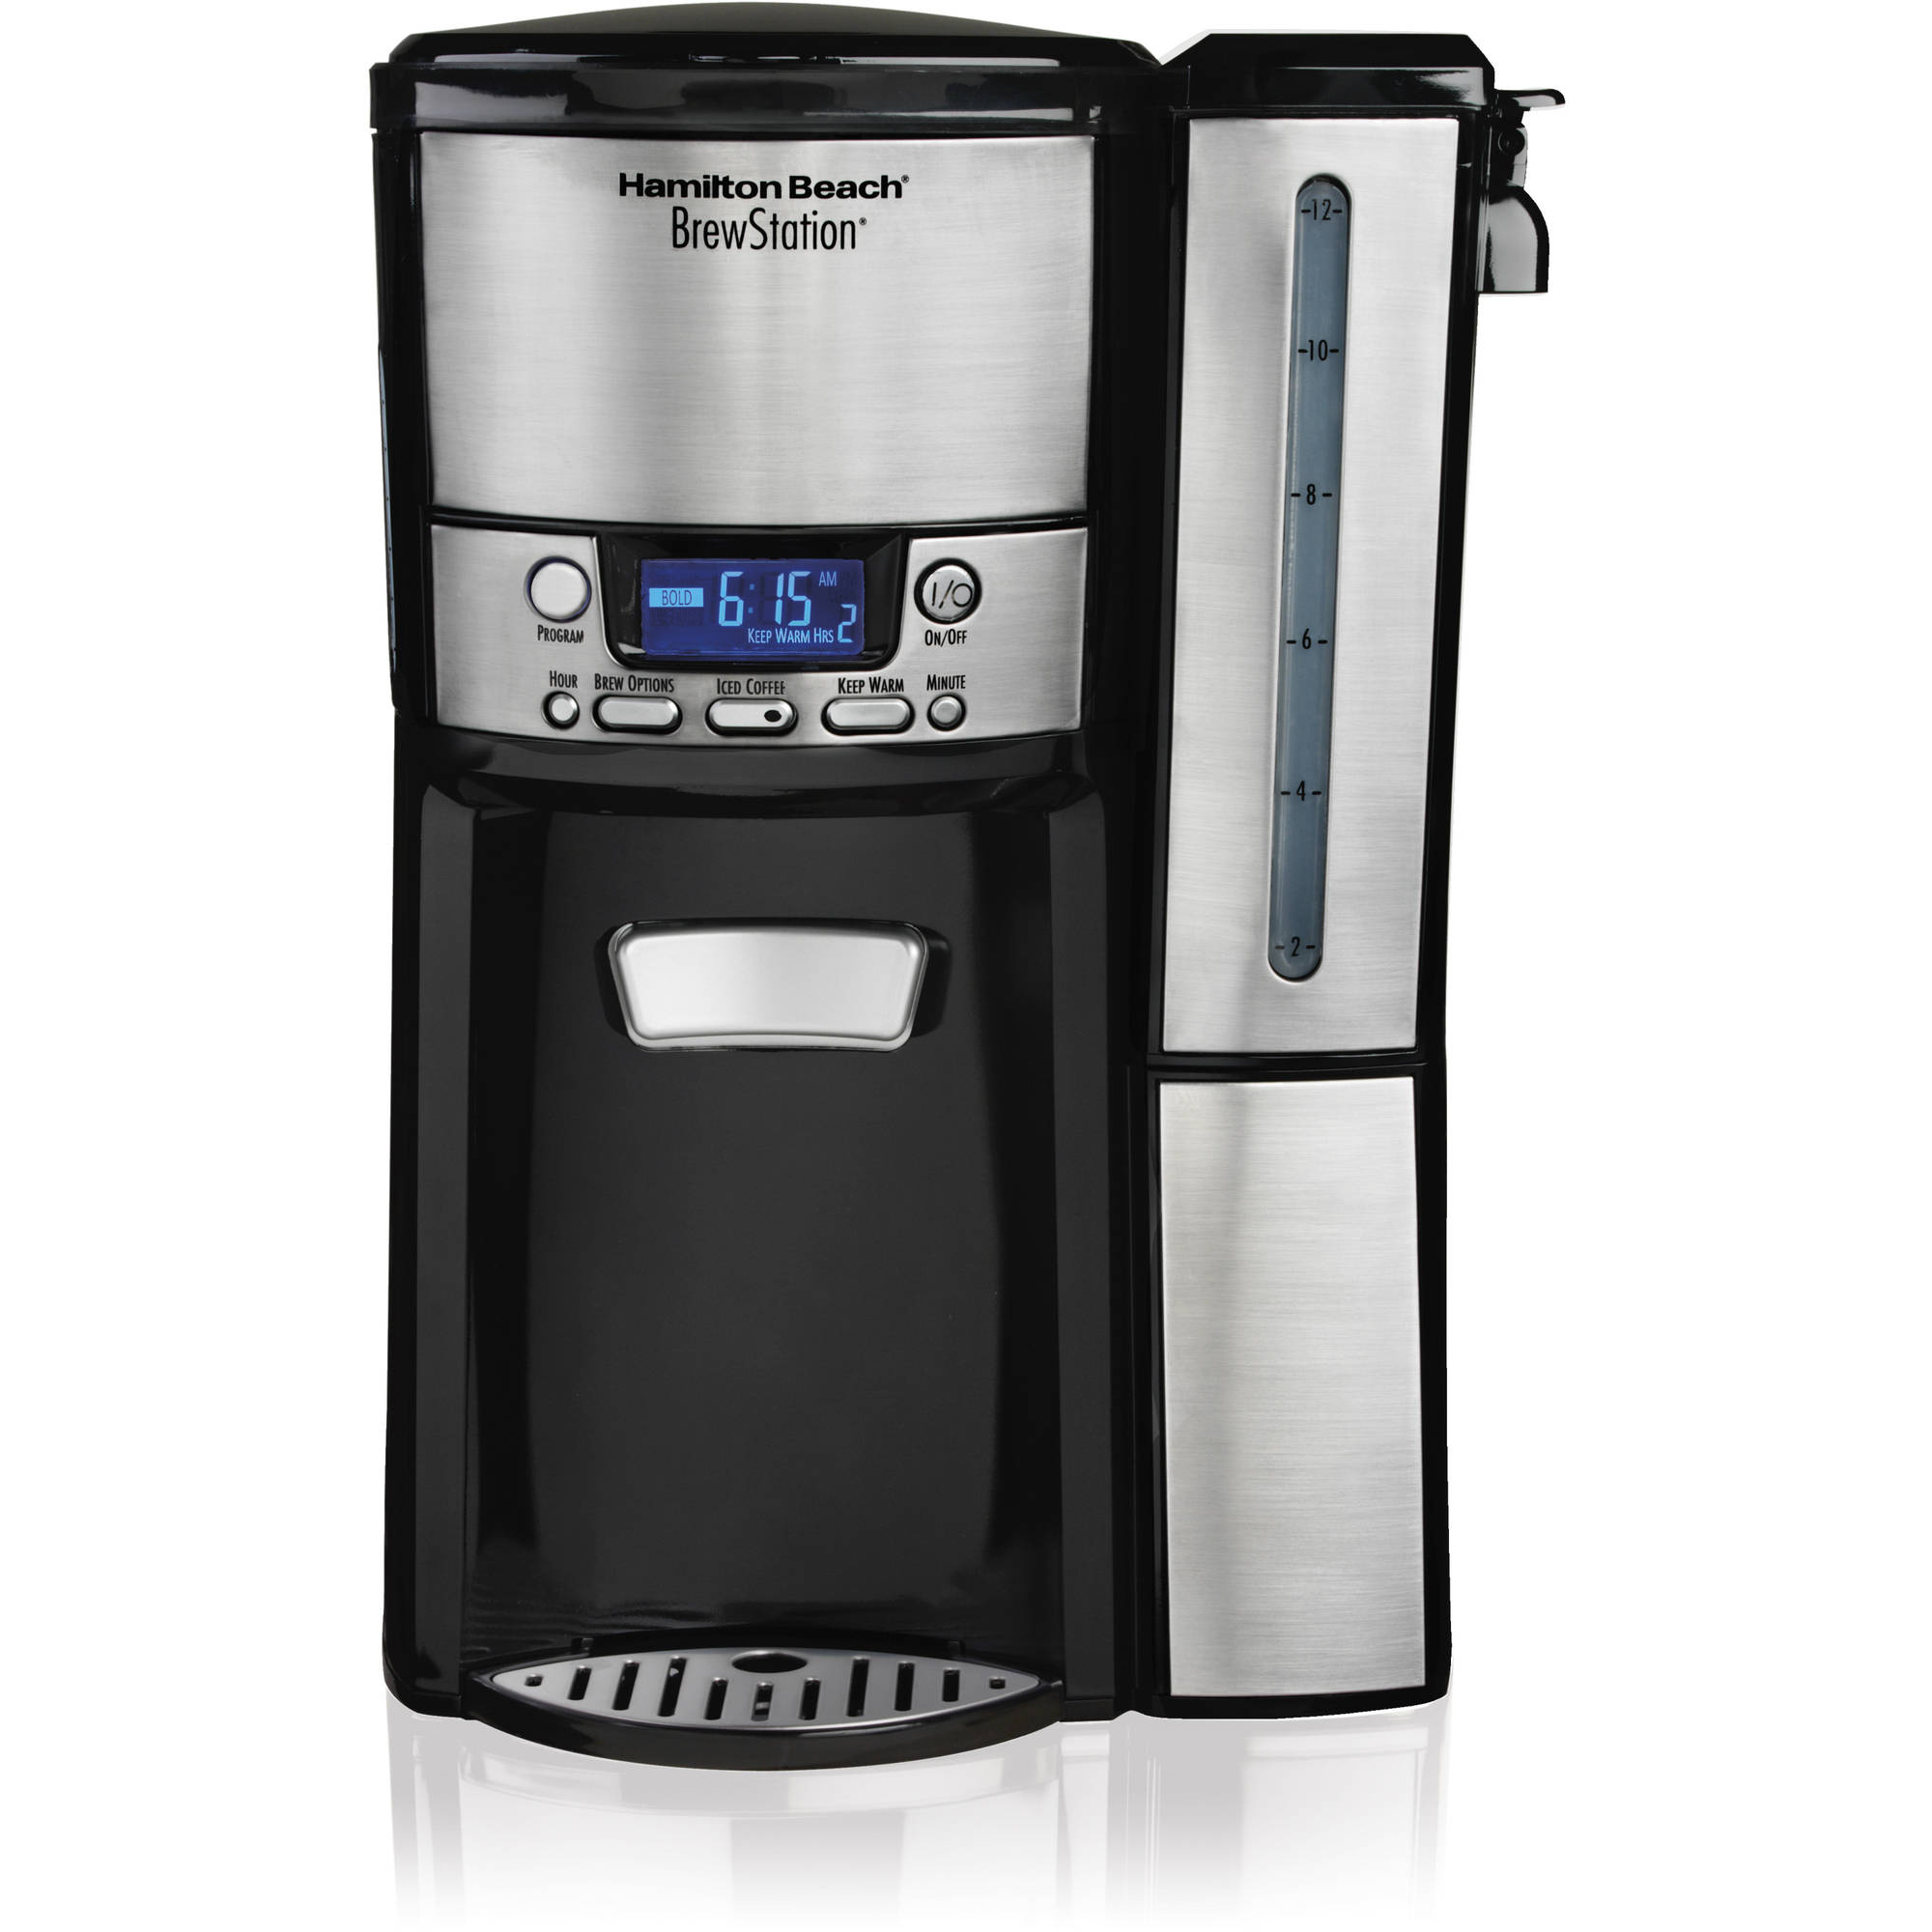 Hamilton Beach 12 Cup BrewStation Dispensing Coffee Maker with Removable Reservoir | Model# 47950